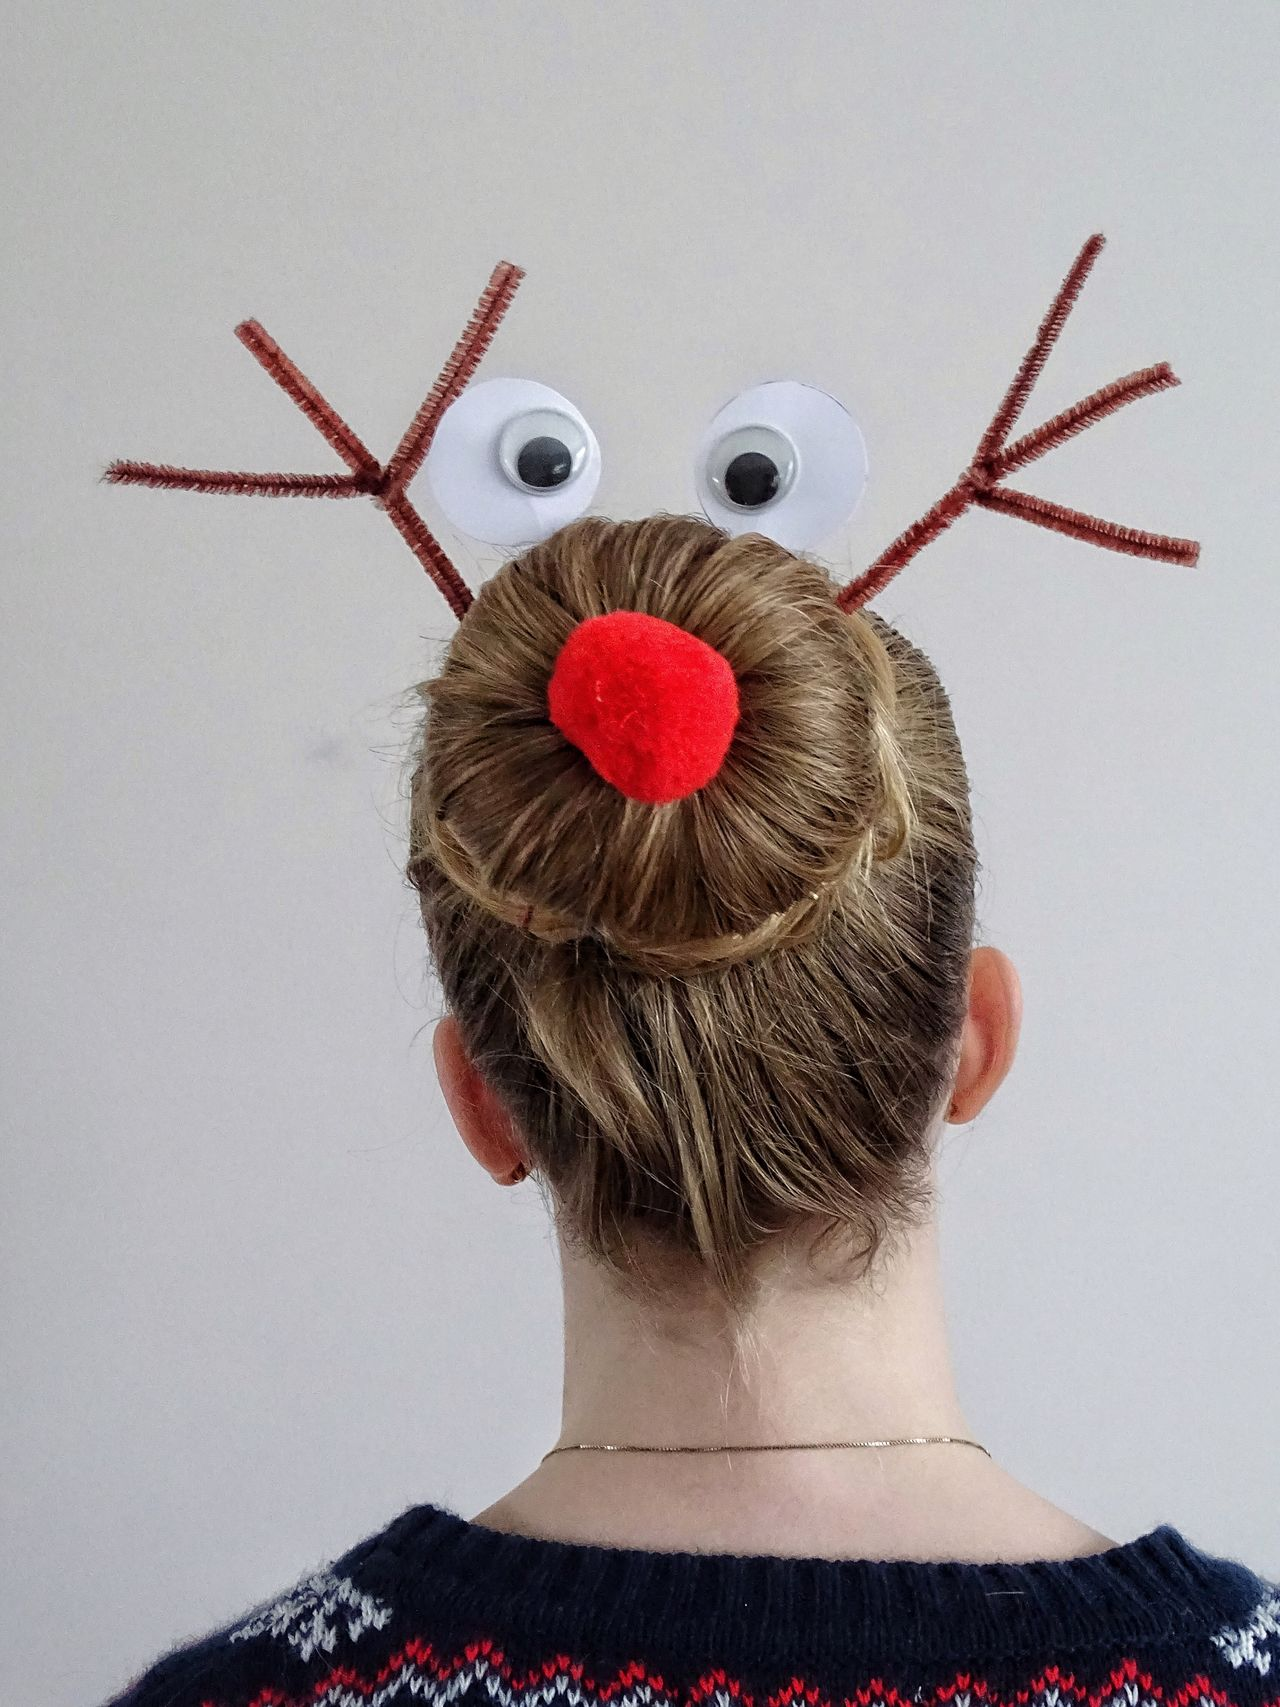 Reindeer Rudolph Hair Hairstyle Blond Hair Stylish Christmas Red Nose Eyes Rear View One Person Indoors  Headshot Childhood Studio Shot Close-up Day People Bun Hairdo Hairstyles Hair Bun Funny Hair Funny Hairstyle